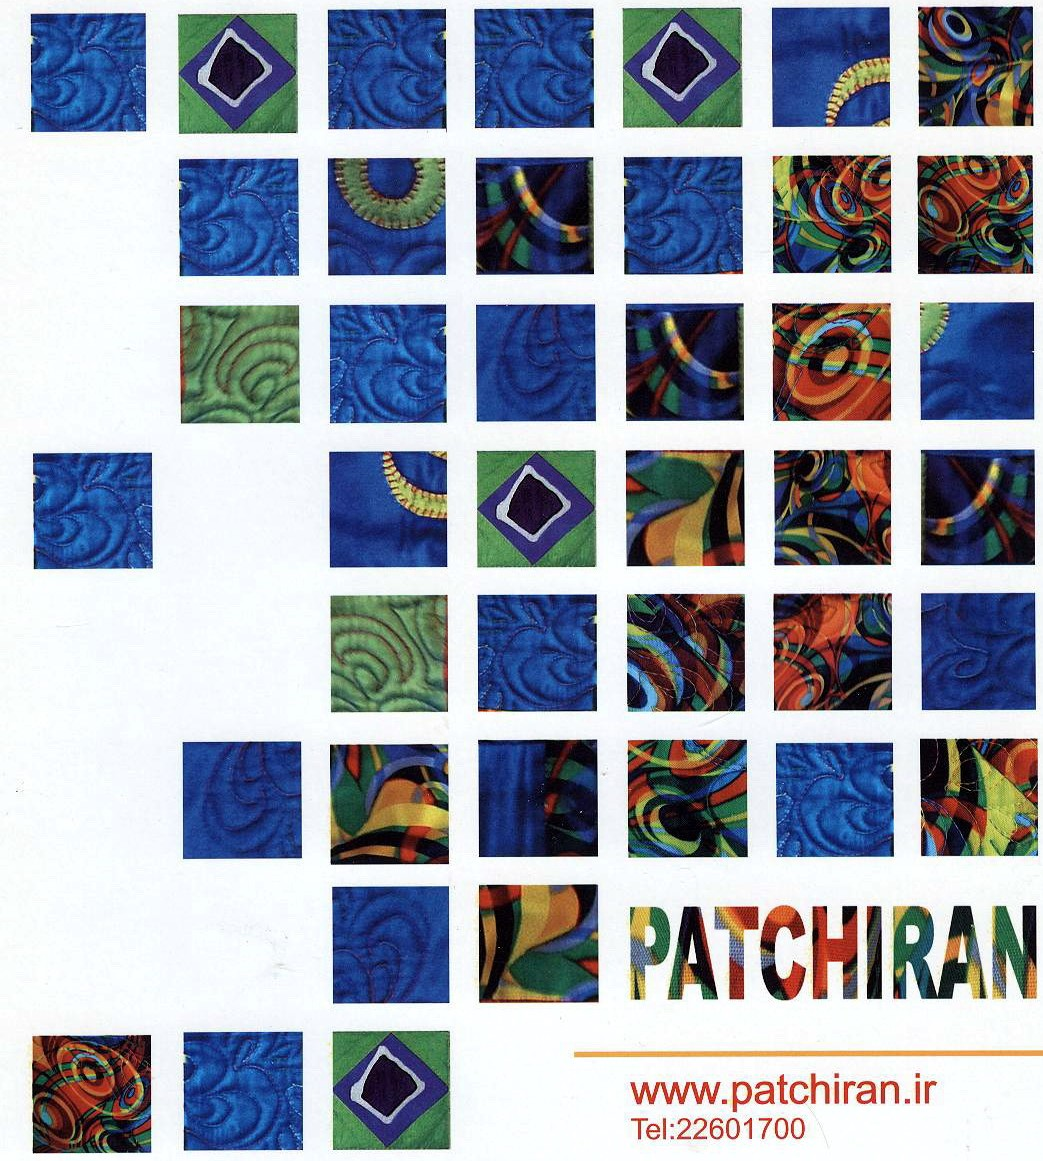 Patch Iran Brochure 1